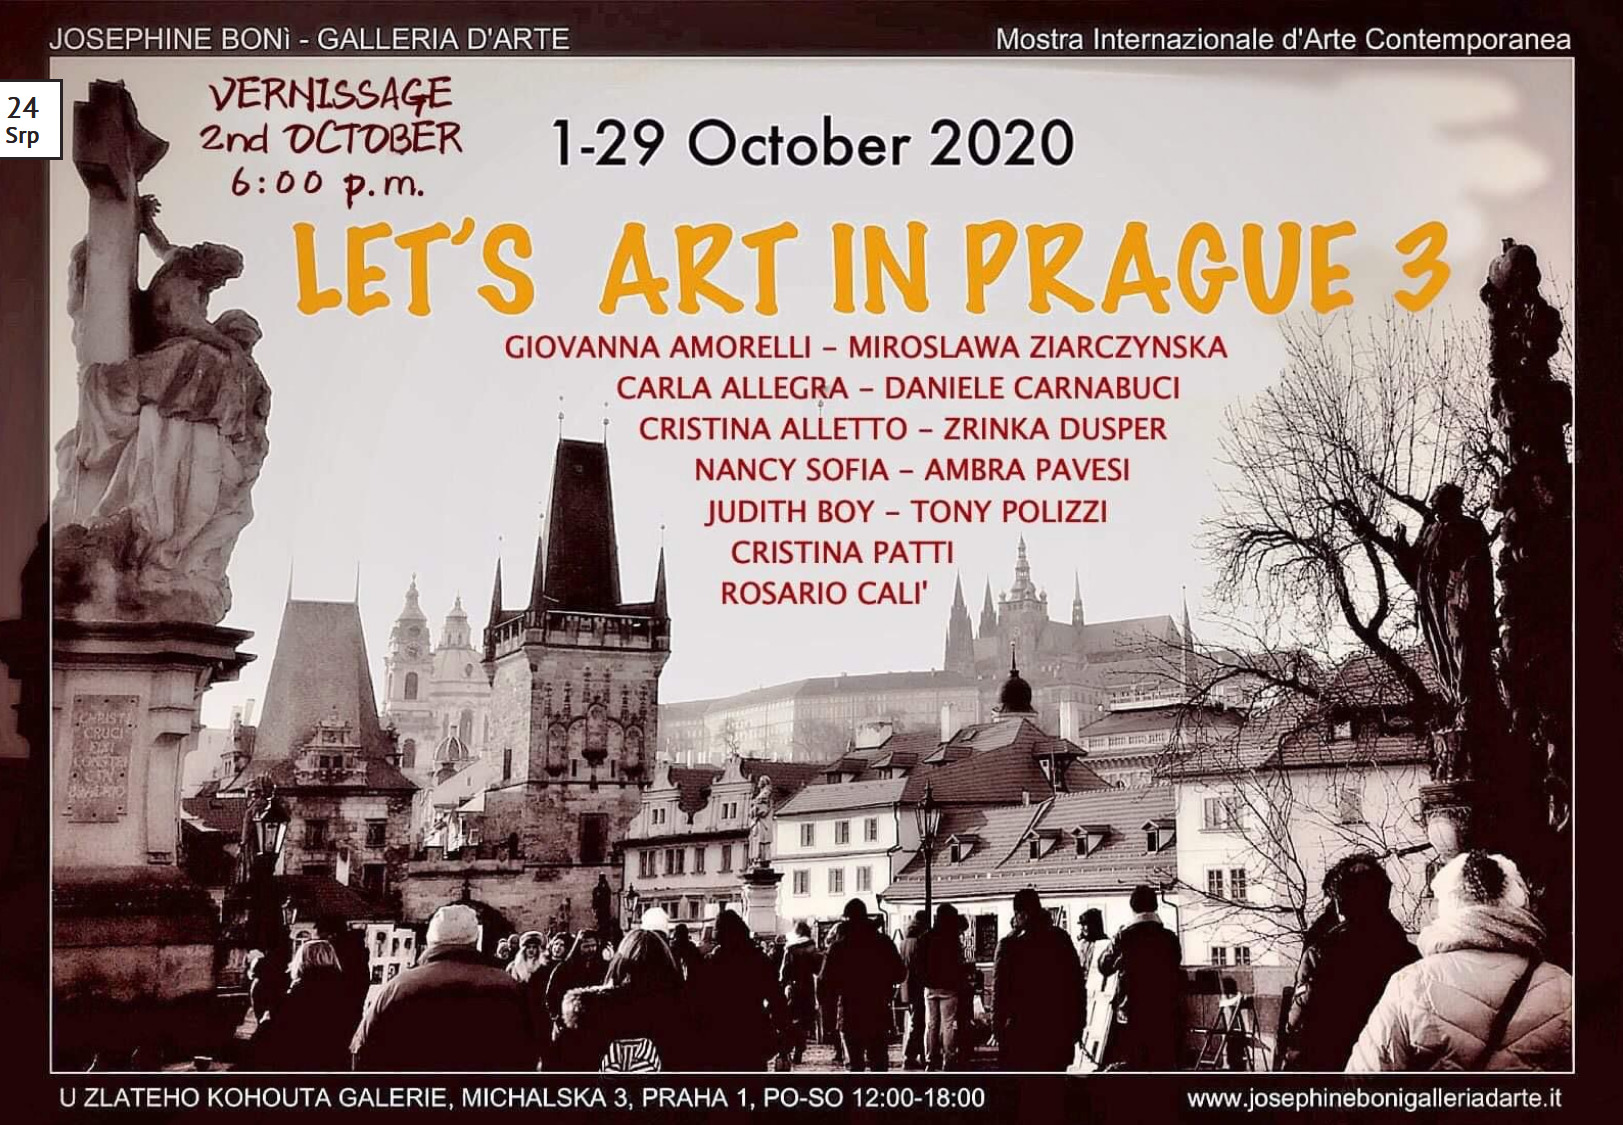 LET'S ART IN PRAGUE 3